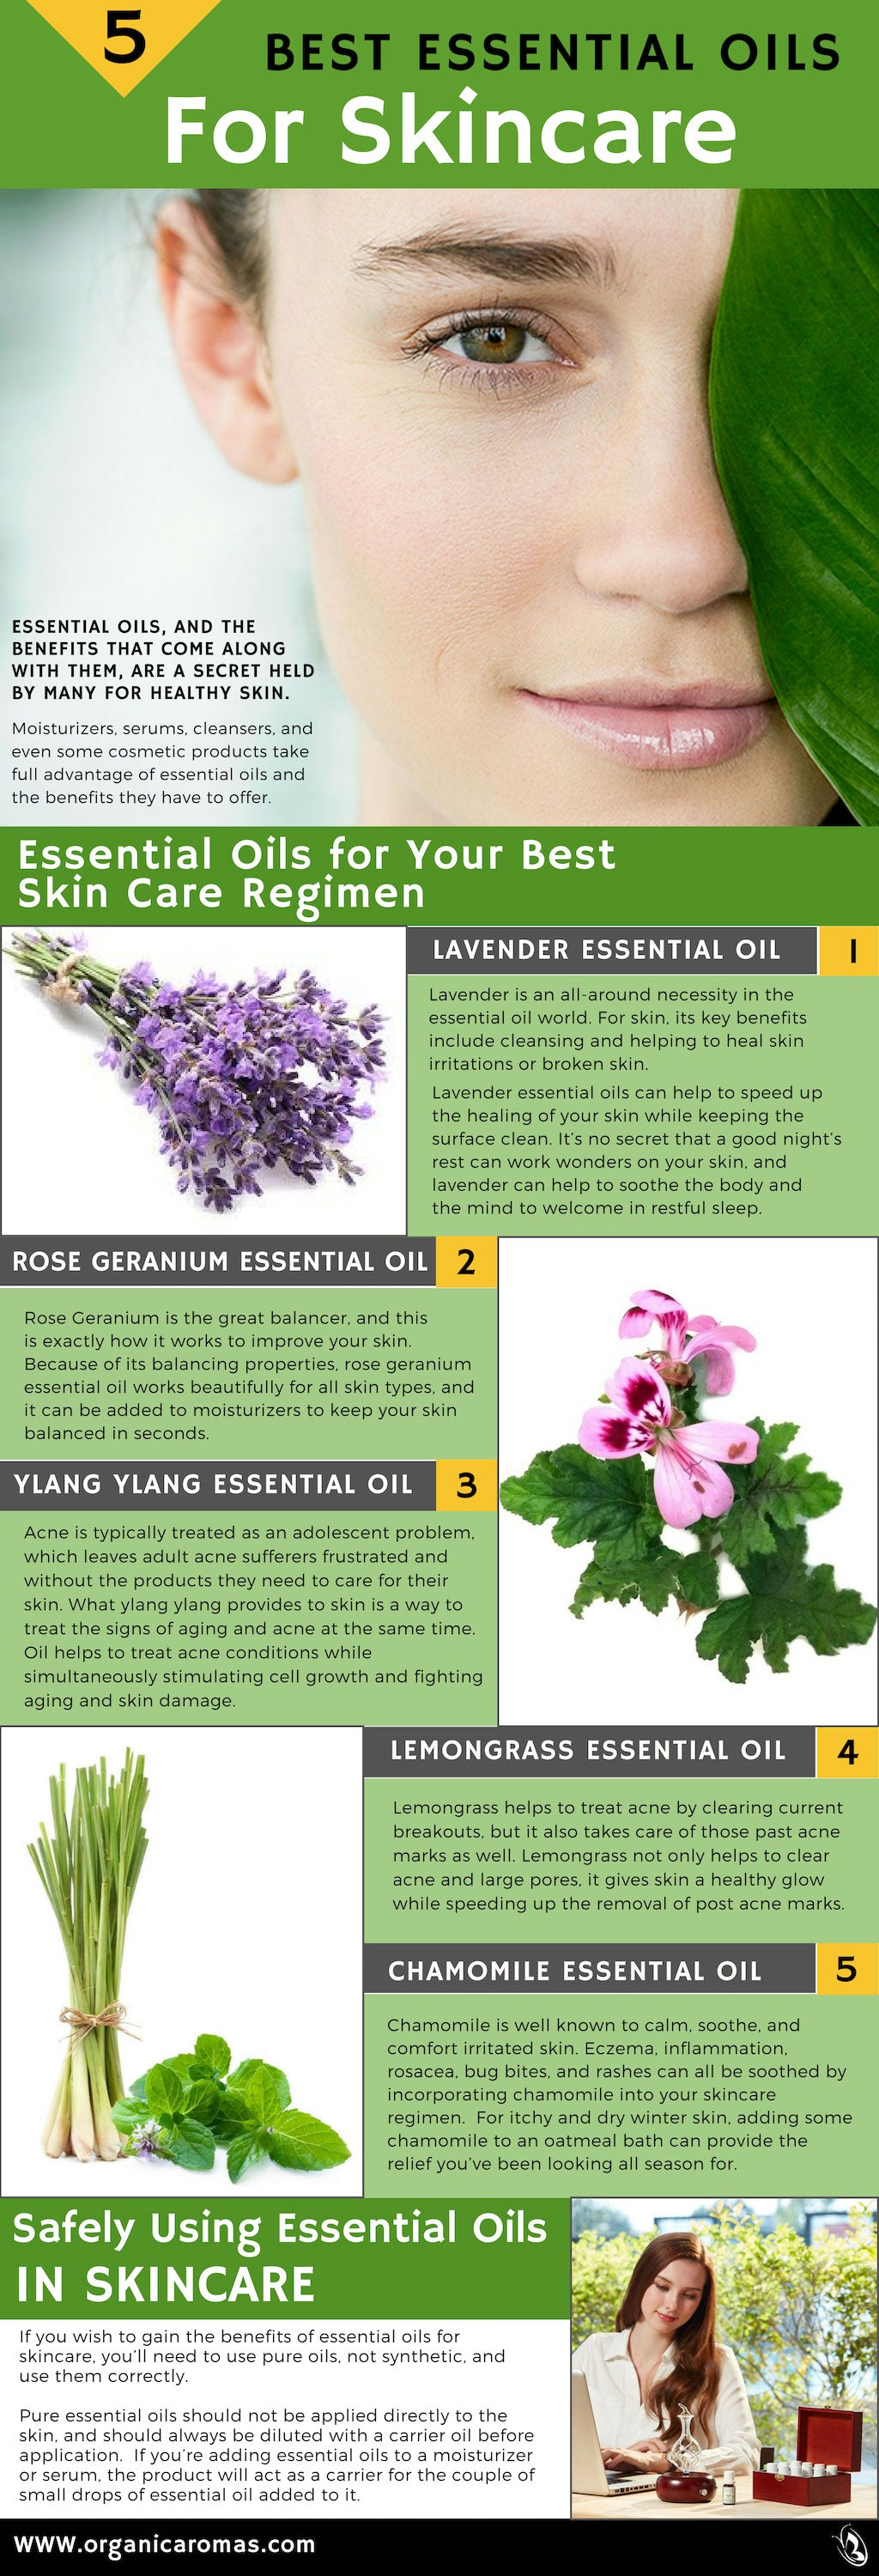 5 Best Essential Oils for Skincare